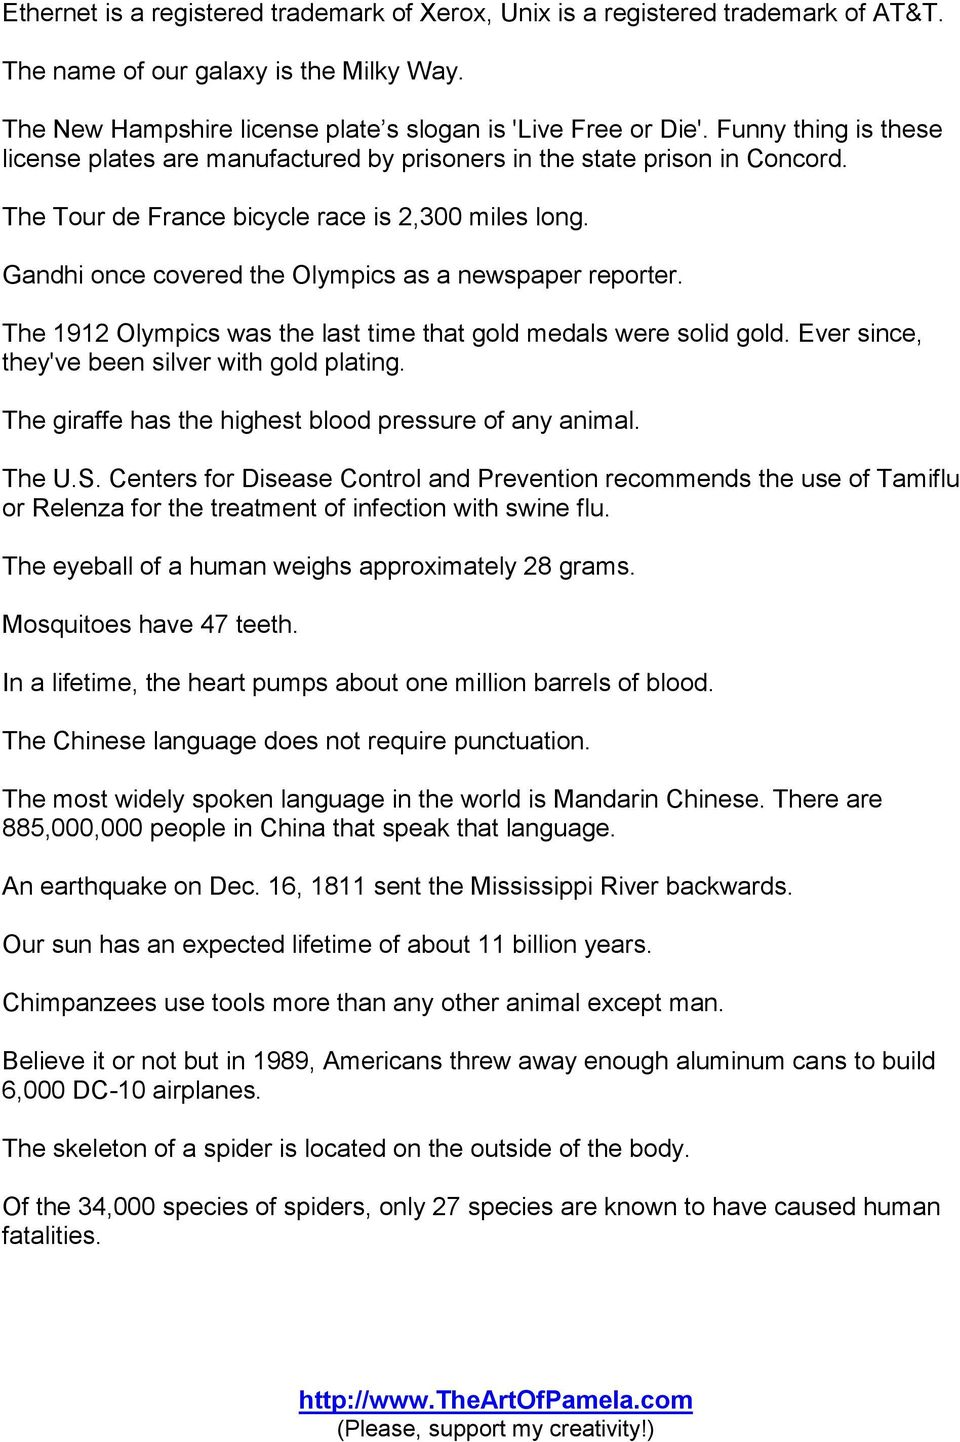 Gandhi once covered the Olympics as a newspaper reporter. The 1912 Olympics was the last time that gold medals were solid gold. Ever since, they've been silver with gold plating.